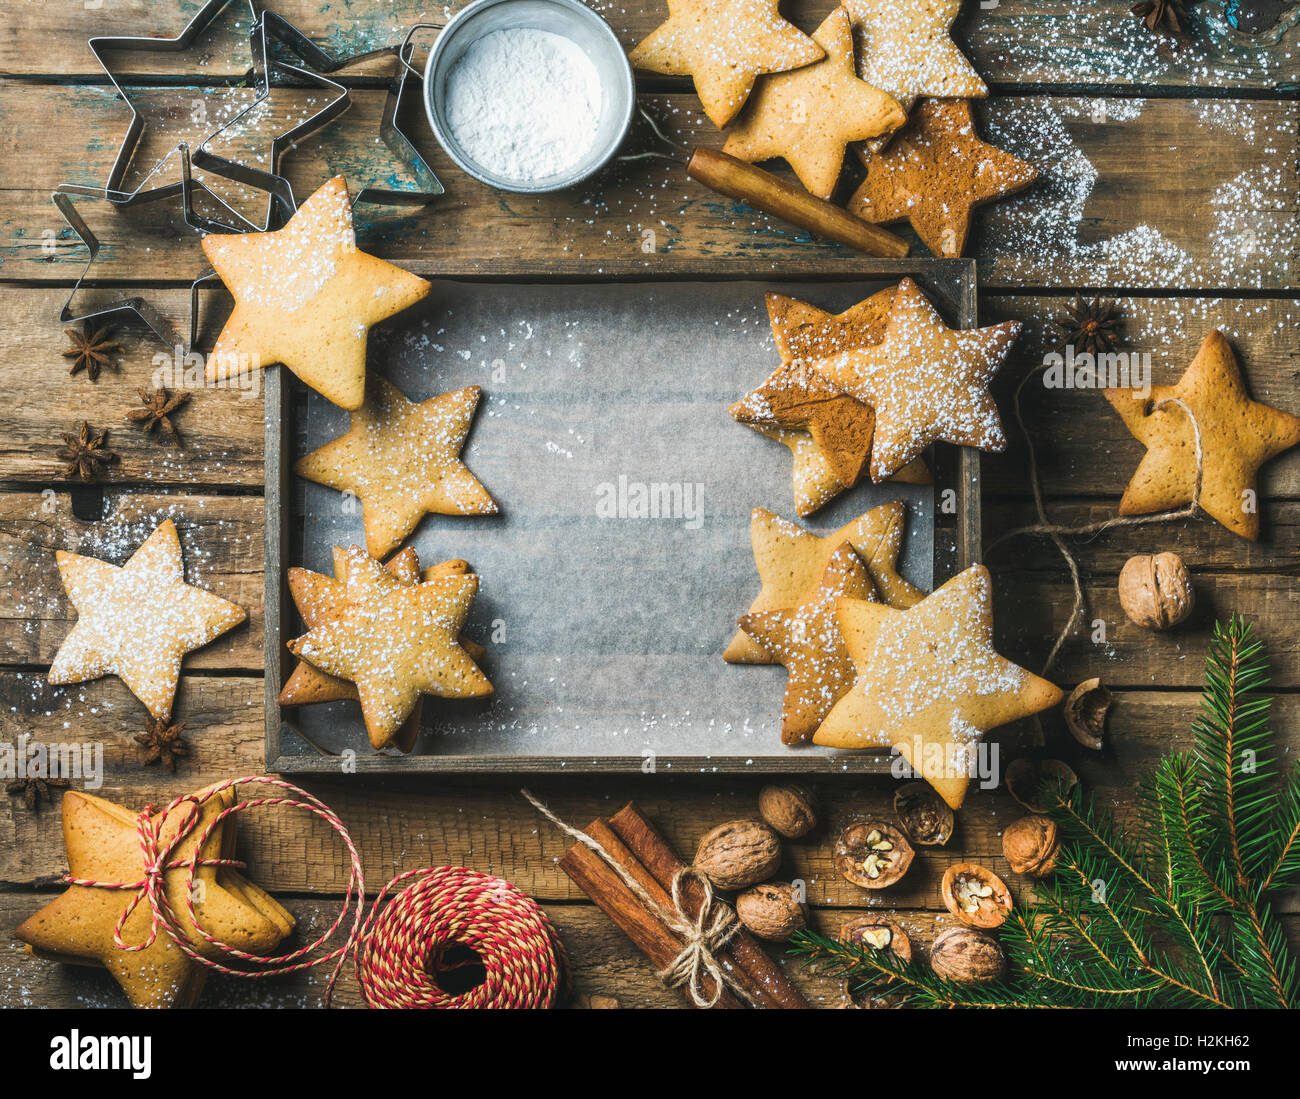 Christmas or New Year holiday background. Gingerbread cookies, sugar powder, nuts, spices, baking molds, fir-tree - Stock Image